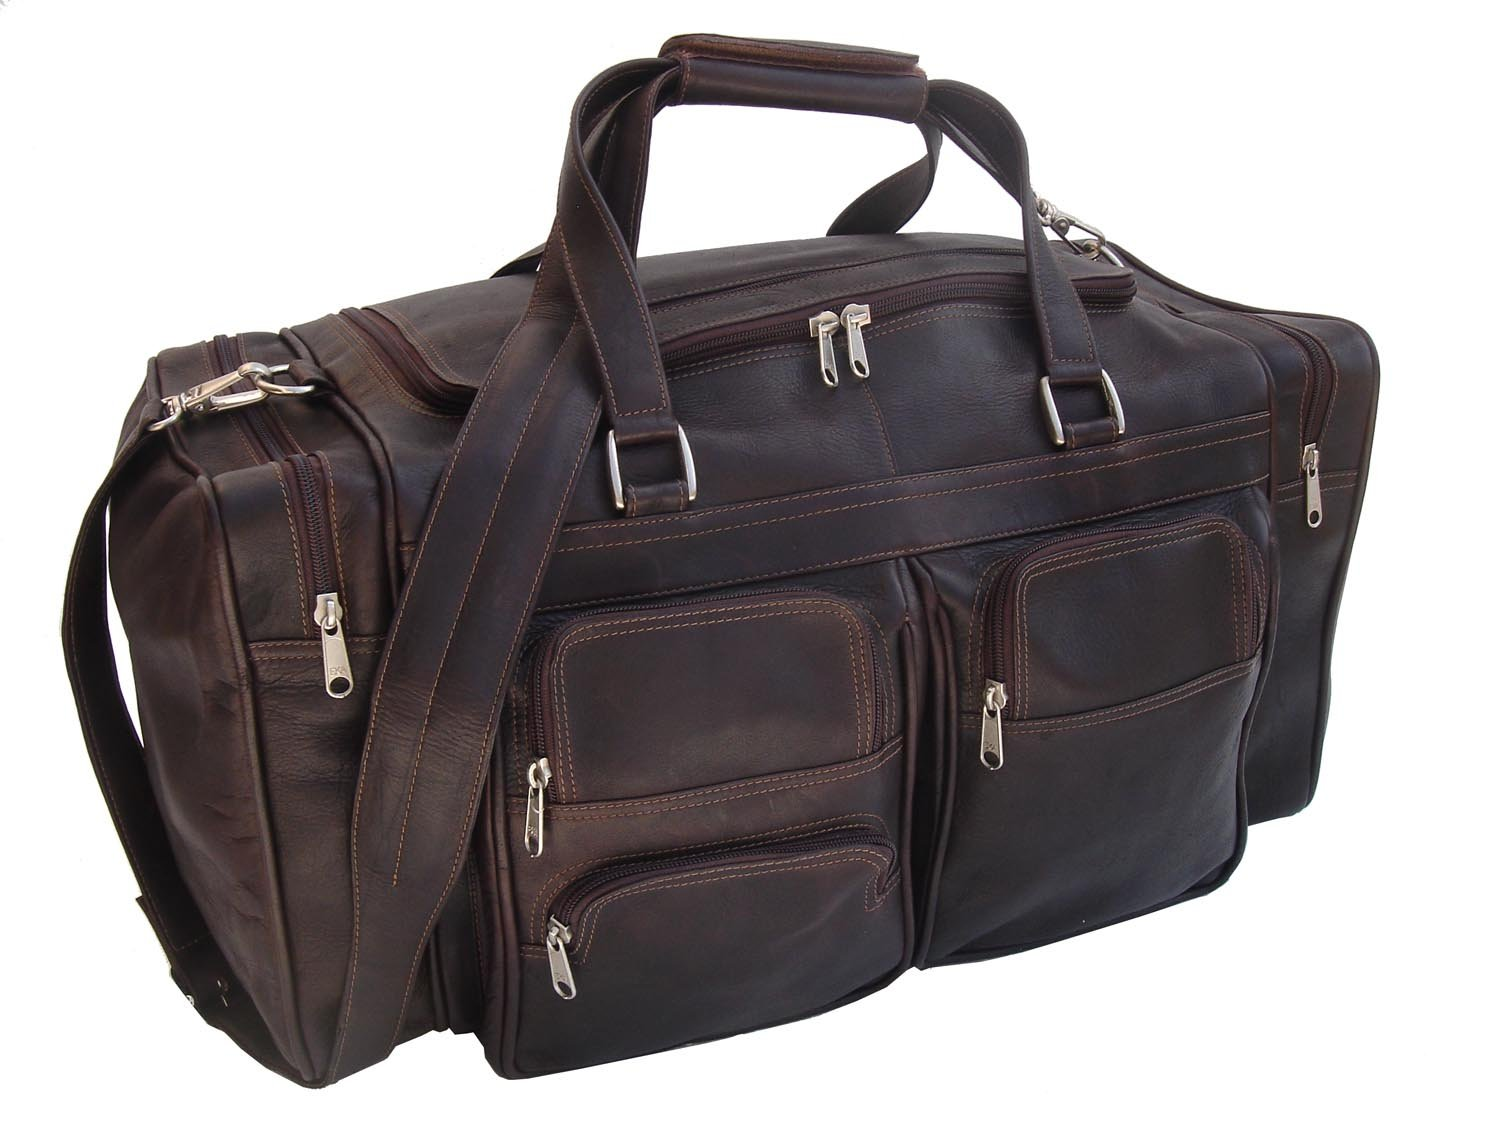 c9727517686 Amazon.com   Piel Leather 20In Duffel Bag with Pockets, Black, One Size    Travel Duffels